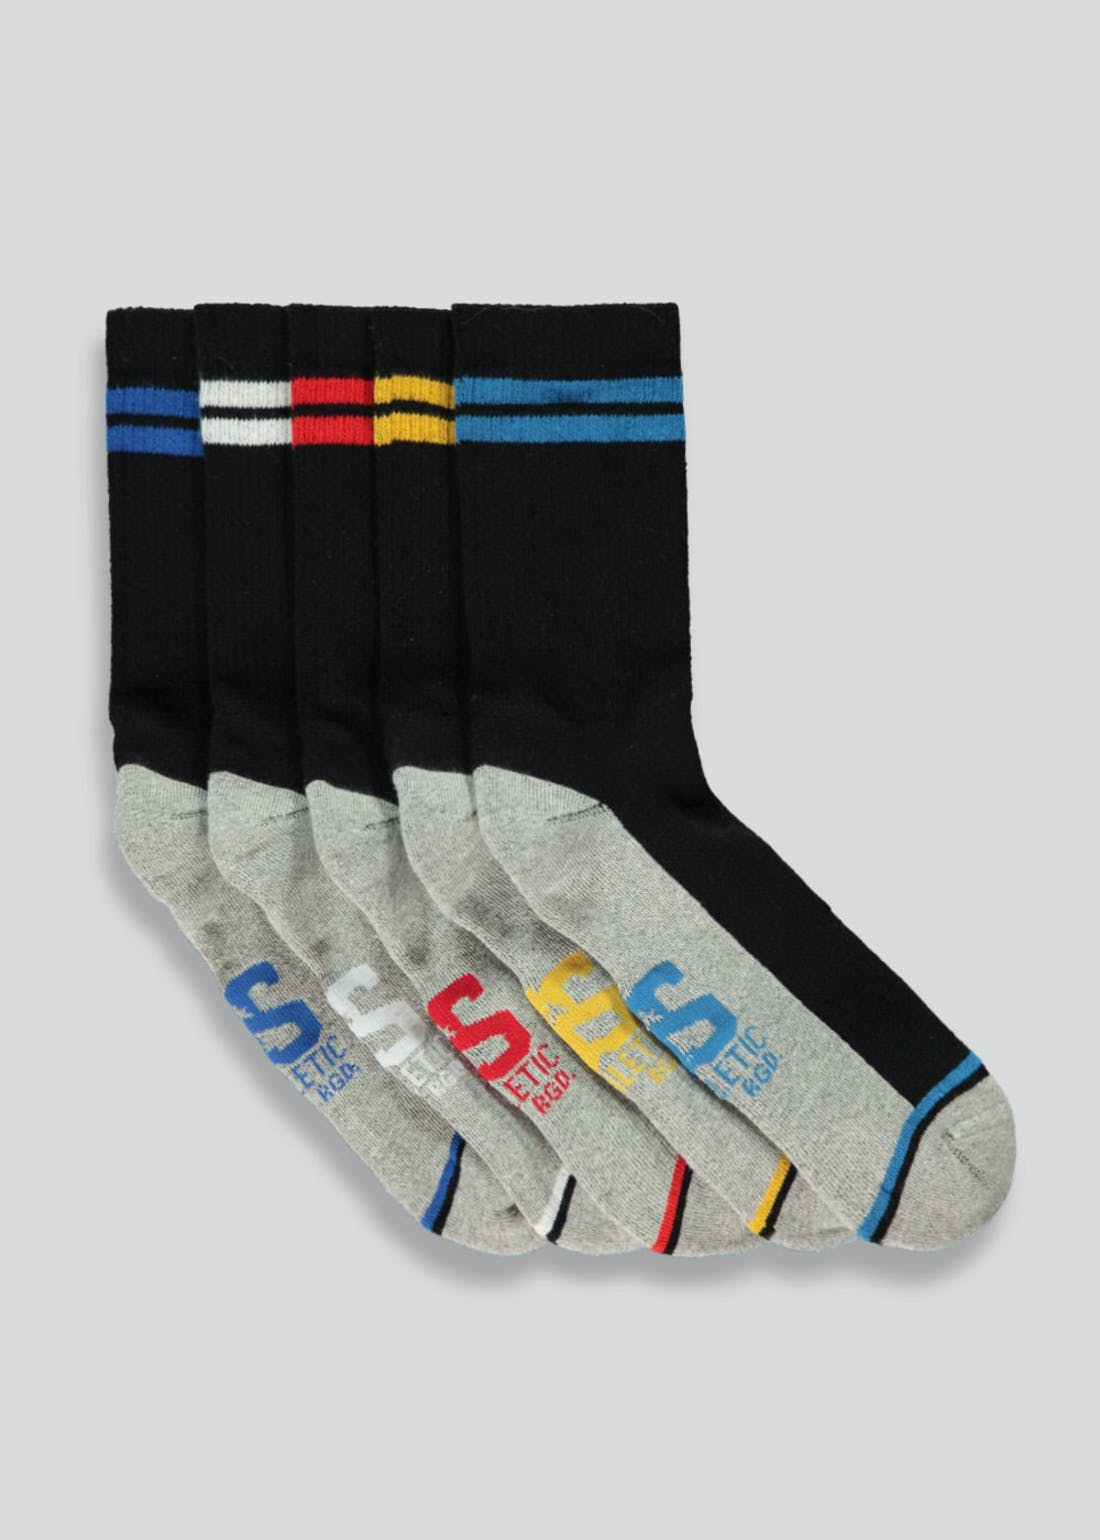 US Athletic 5 Pack Socks